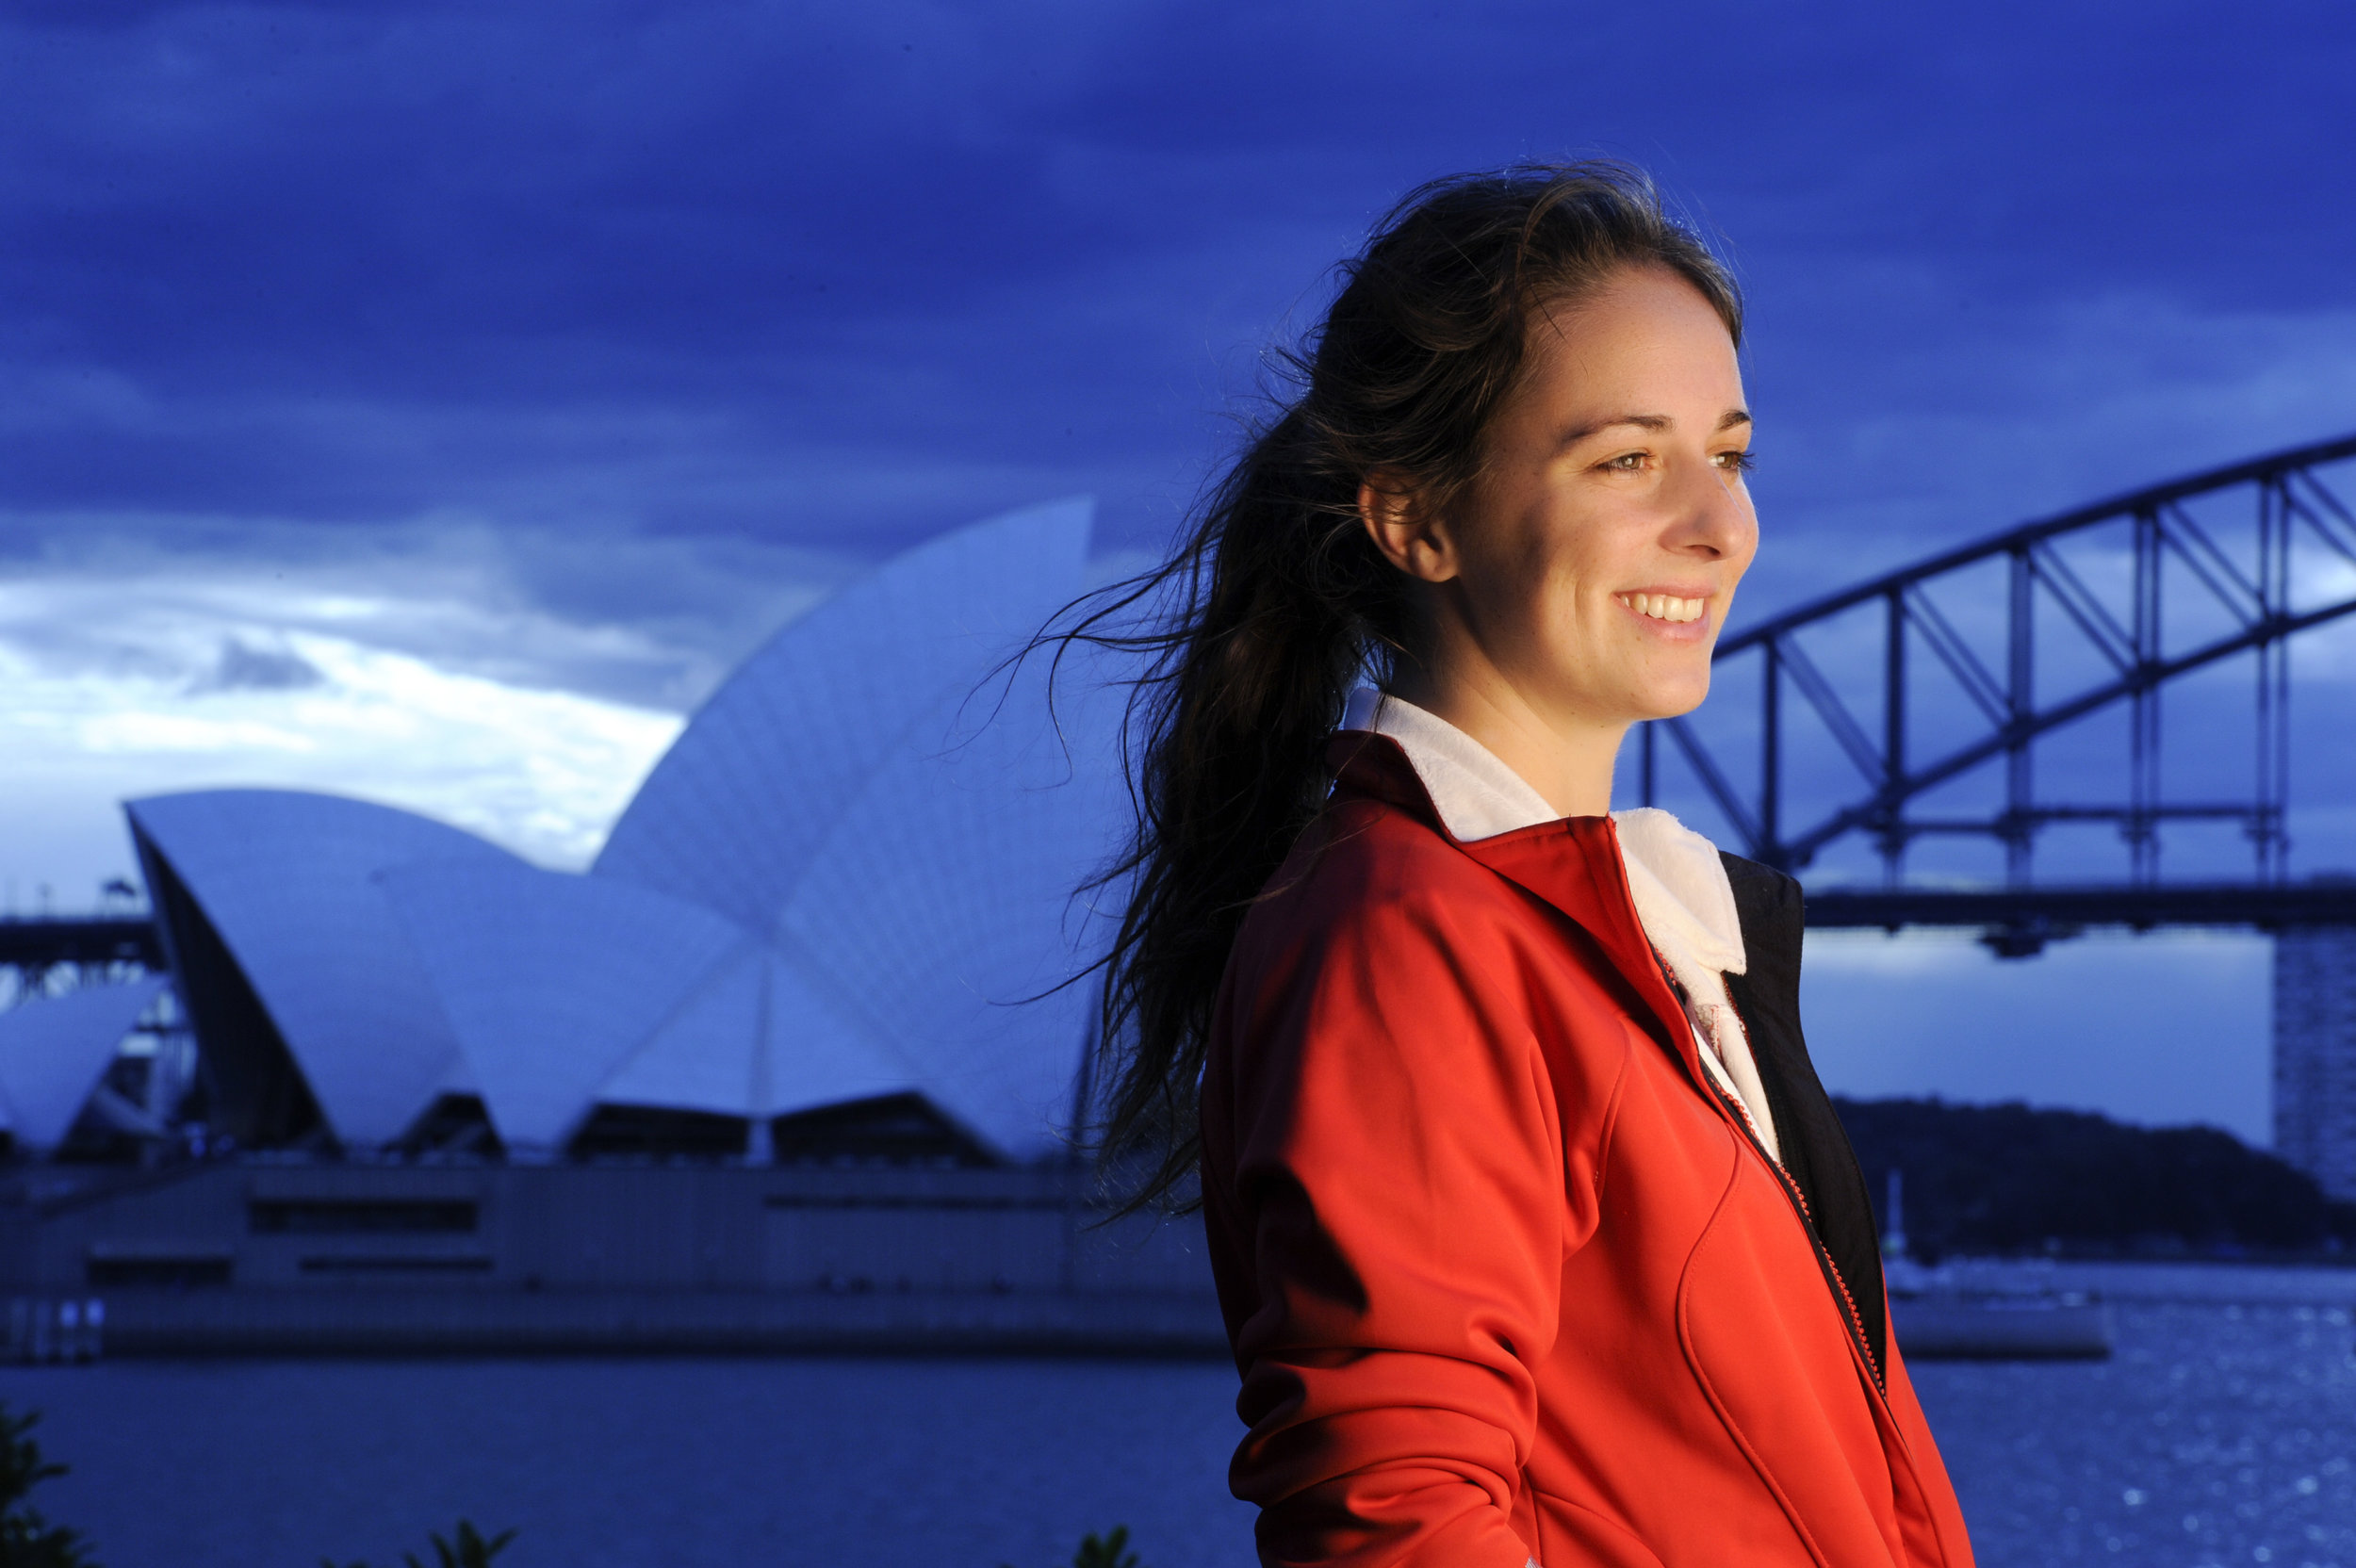 A test portrait in front of the Sydney Opera House in July of 2009.